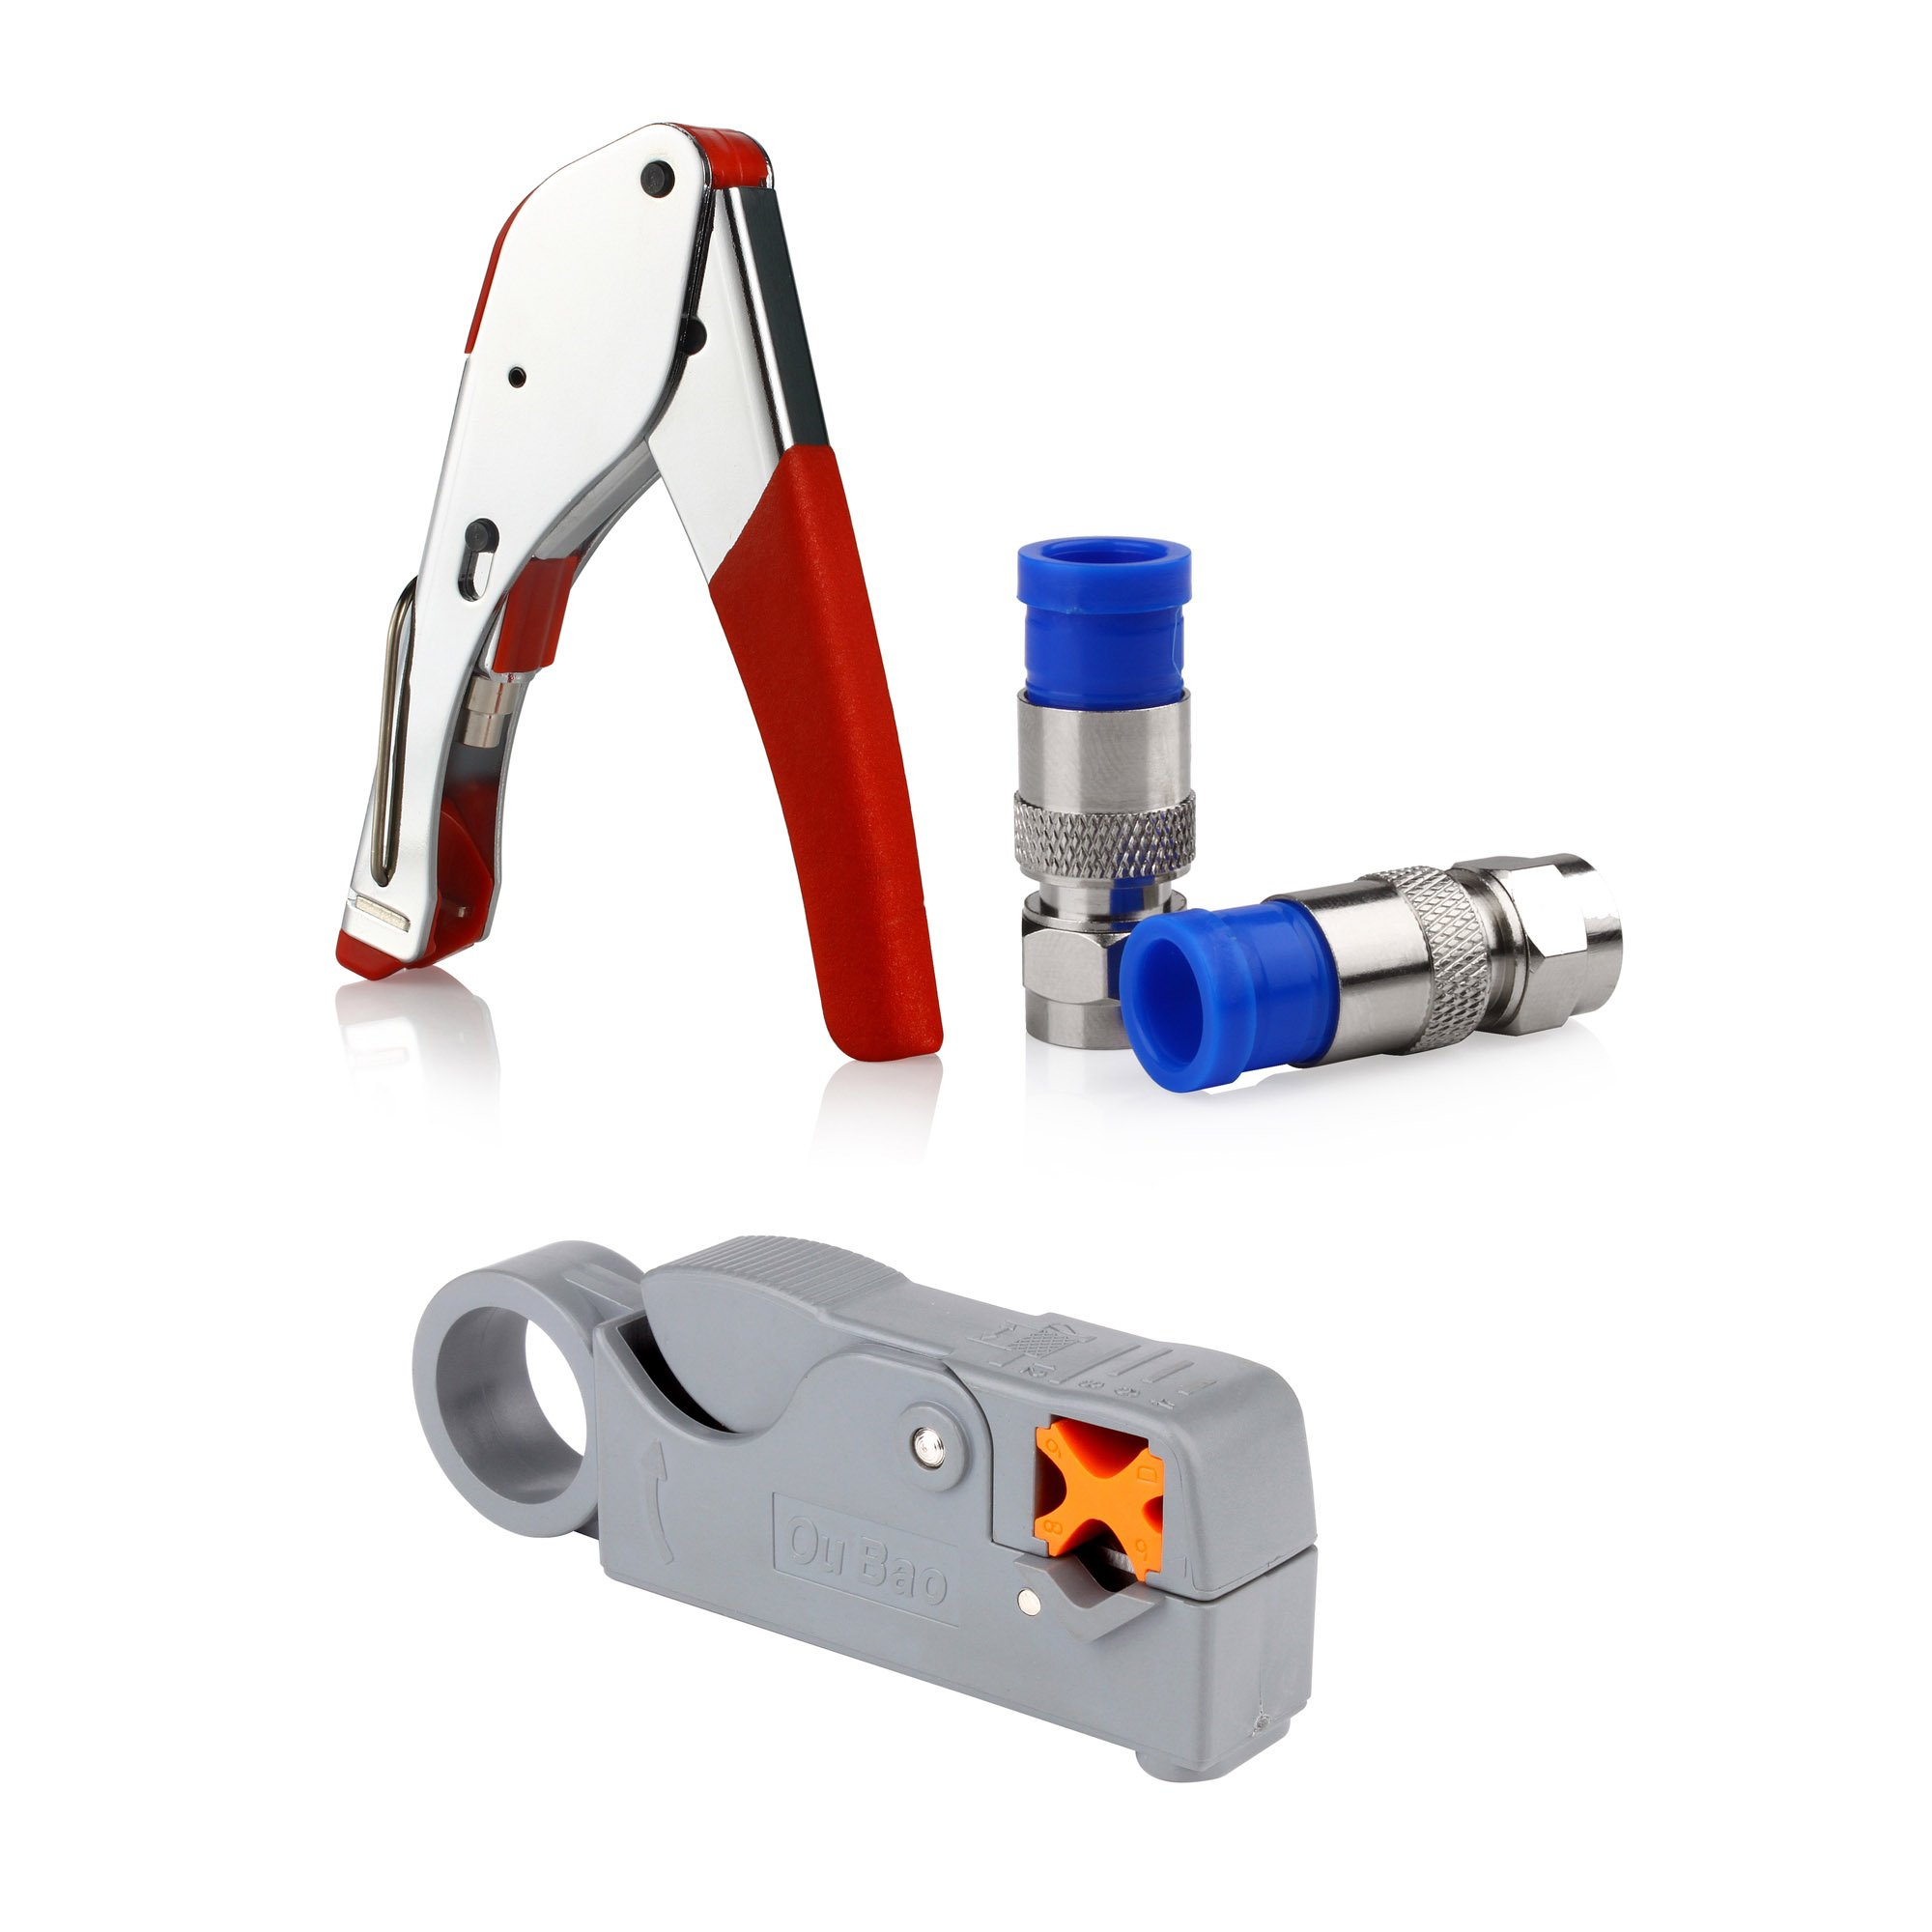 Klix Compression for Connector Tool Cable Stripper RG6 Fitting -Red by Klix (Image #3)